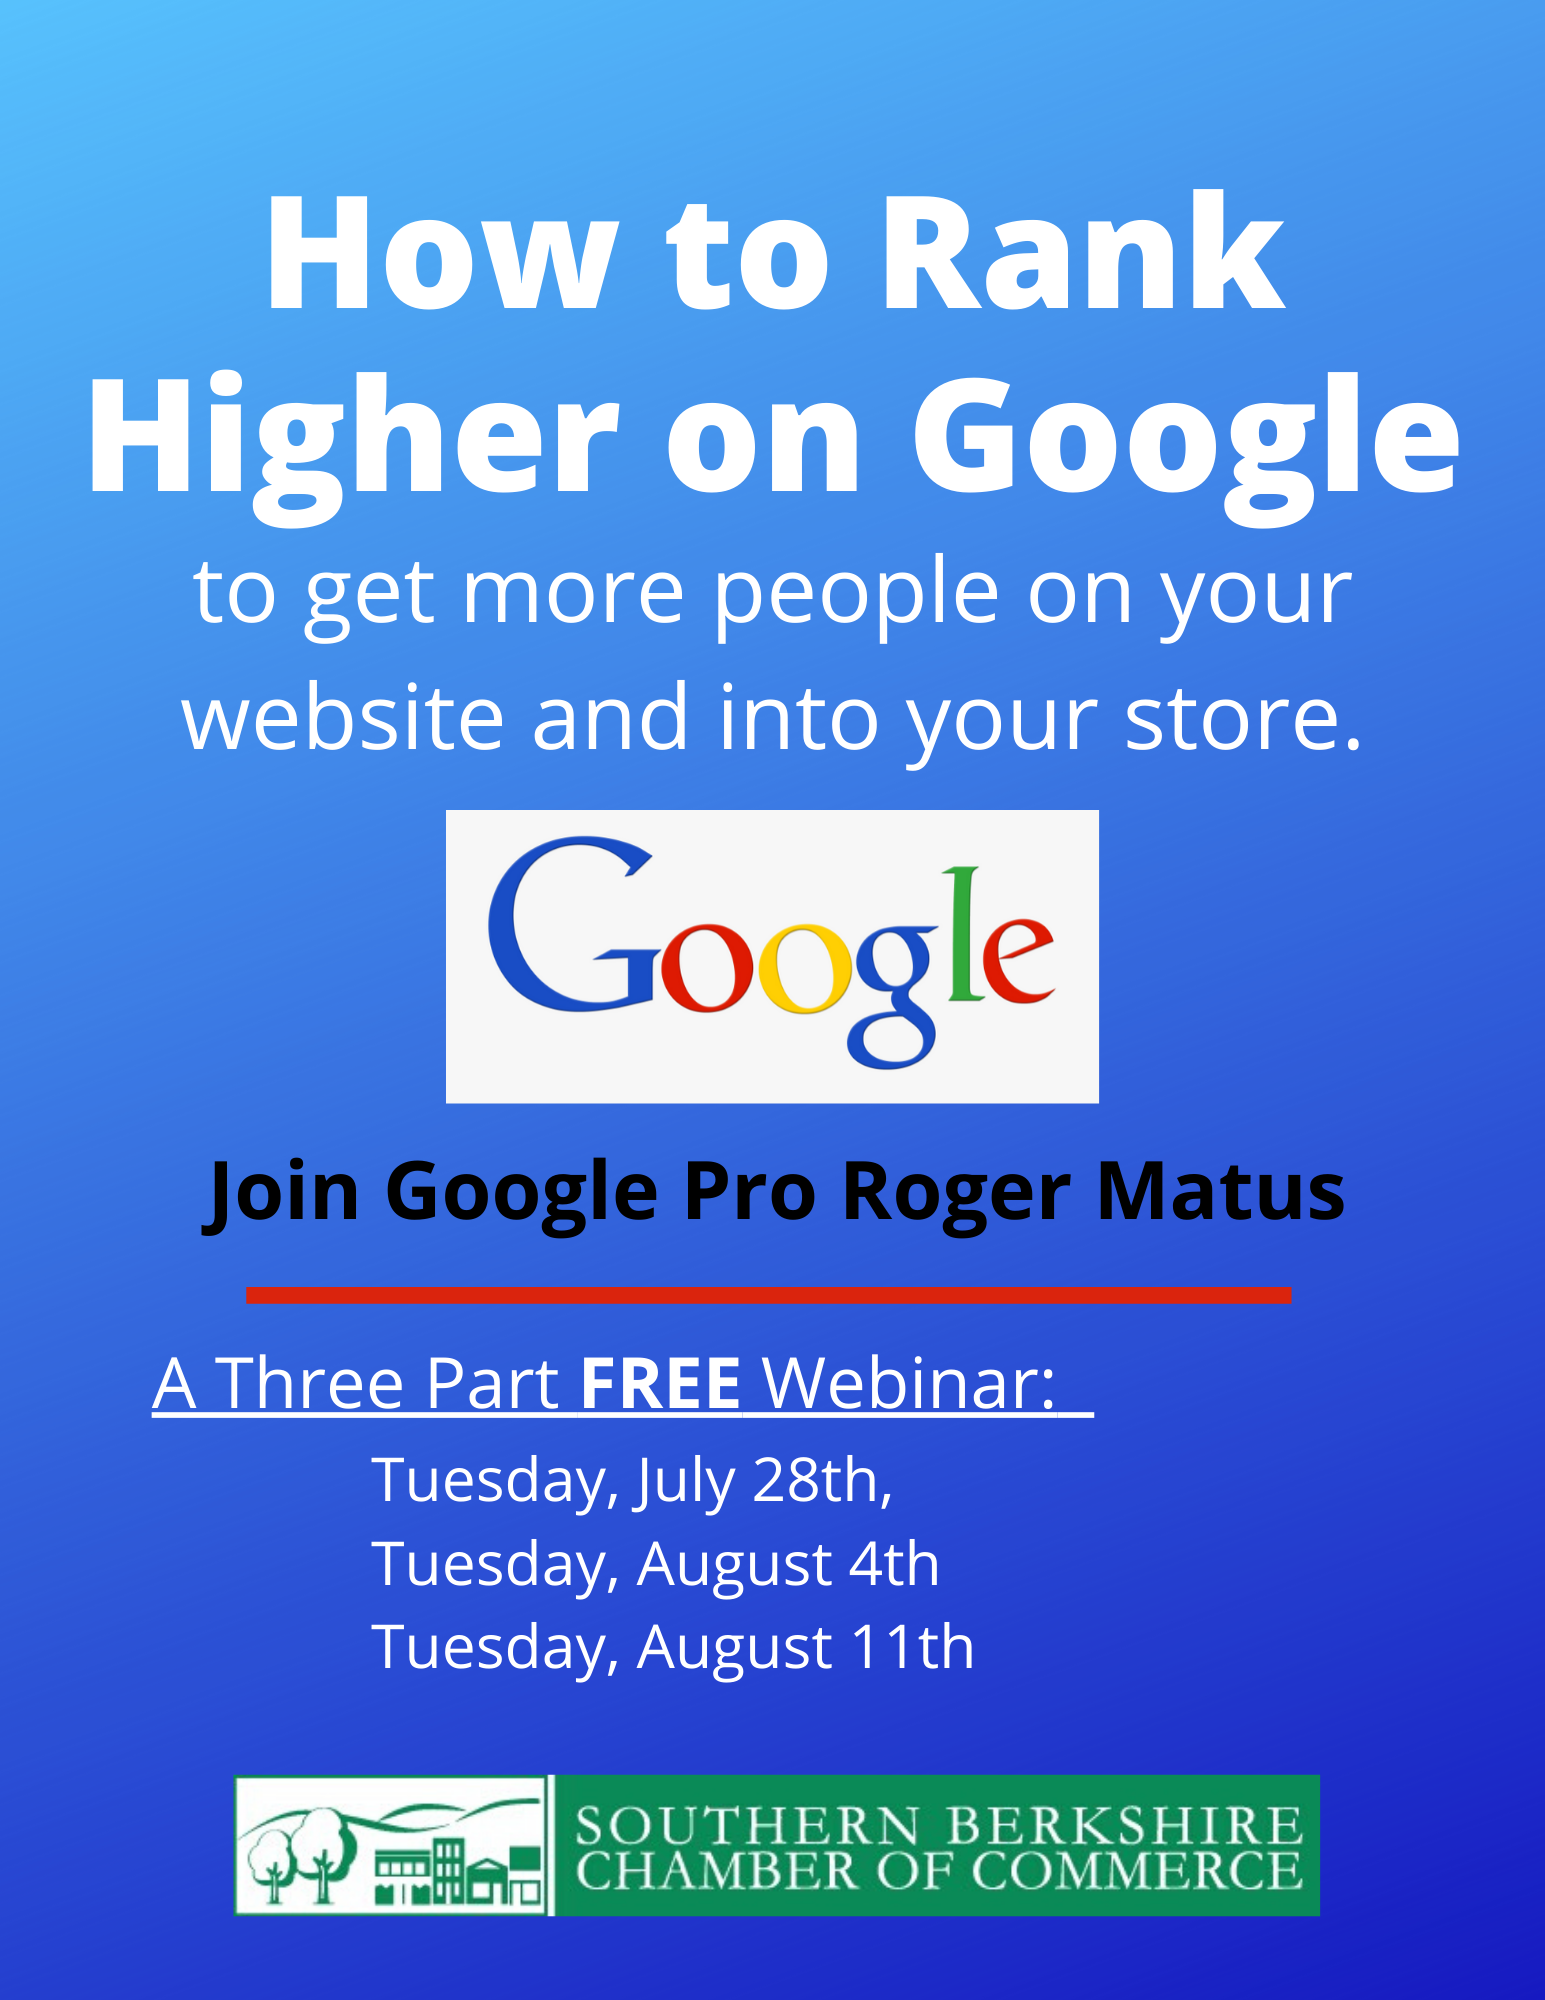 Webinar - Rank Higher on Google: Lasting Wins